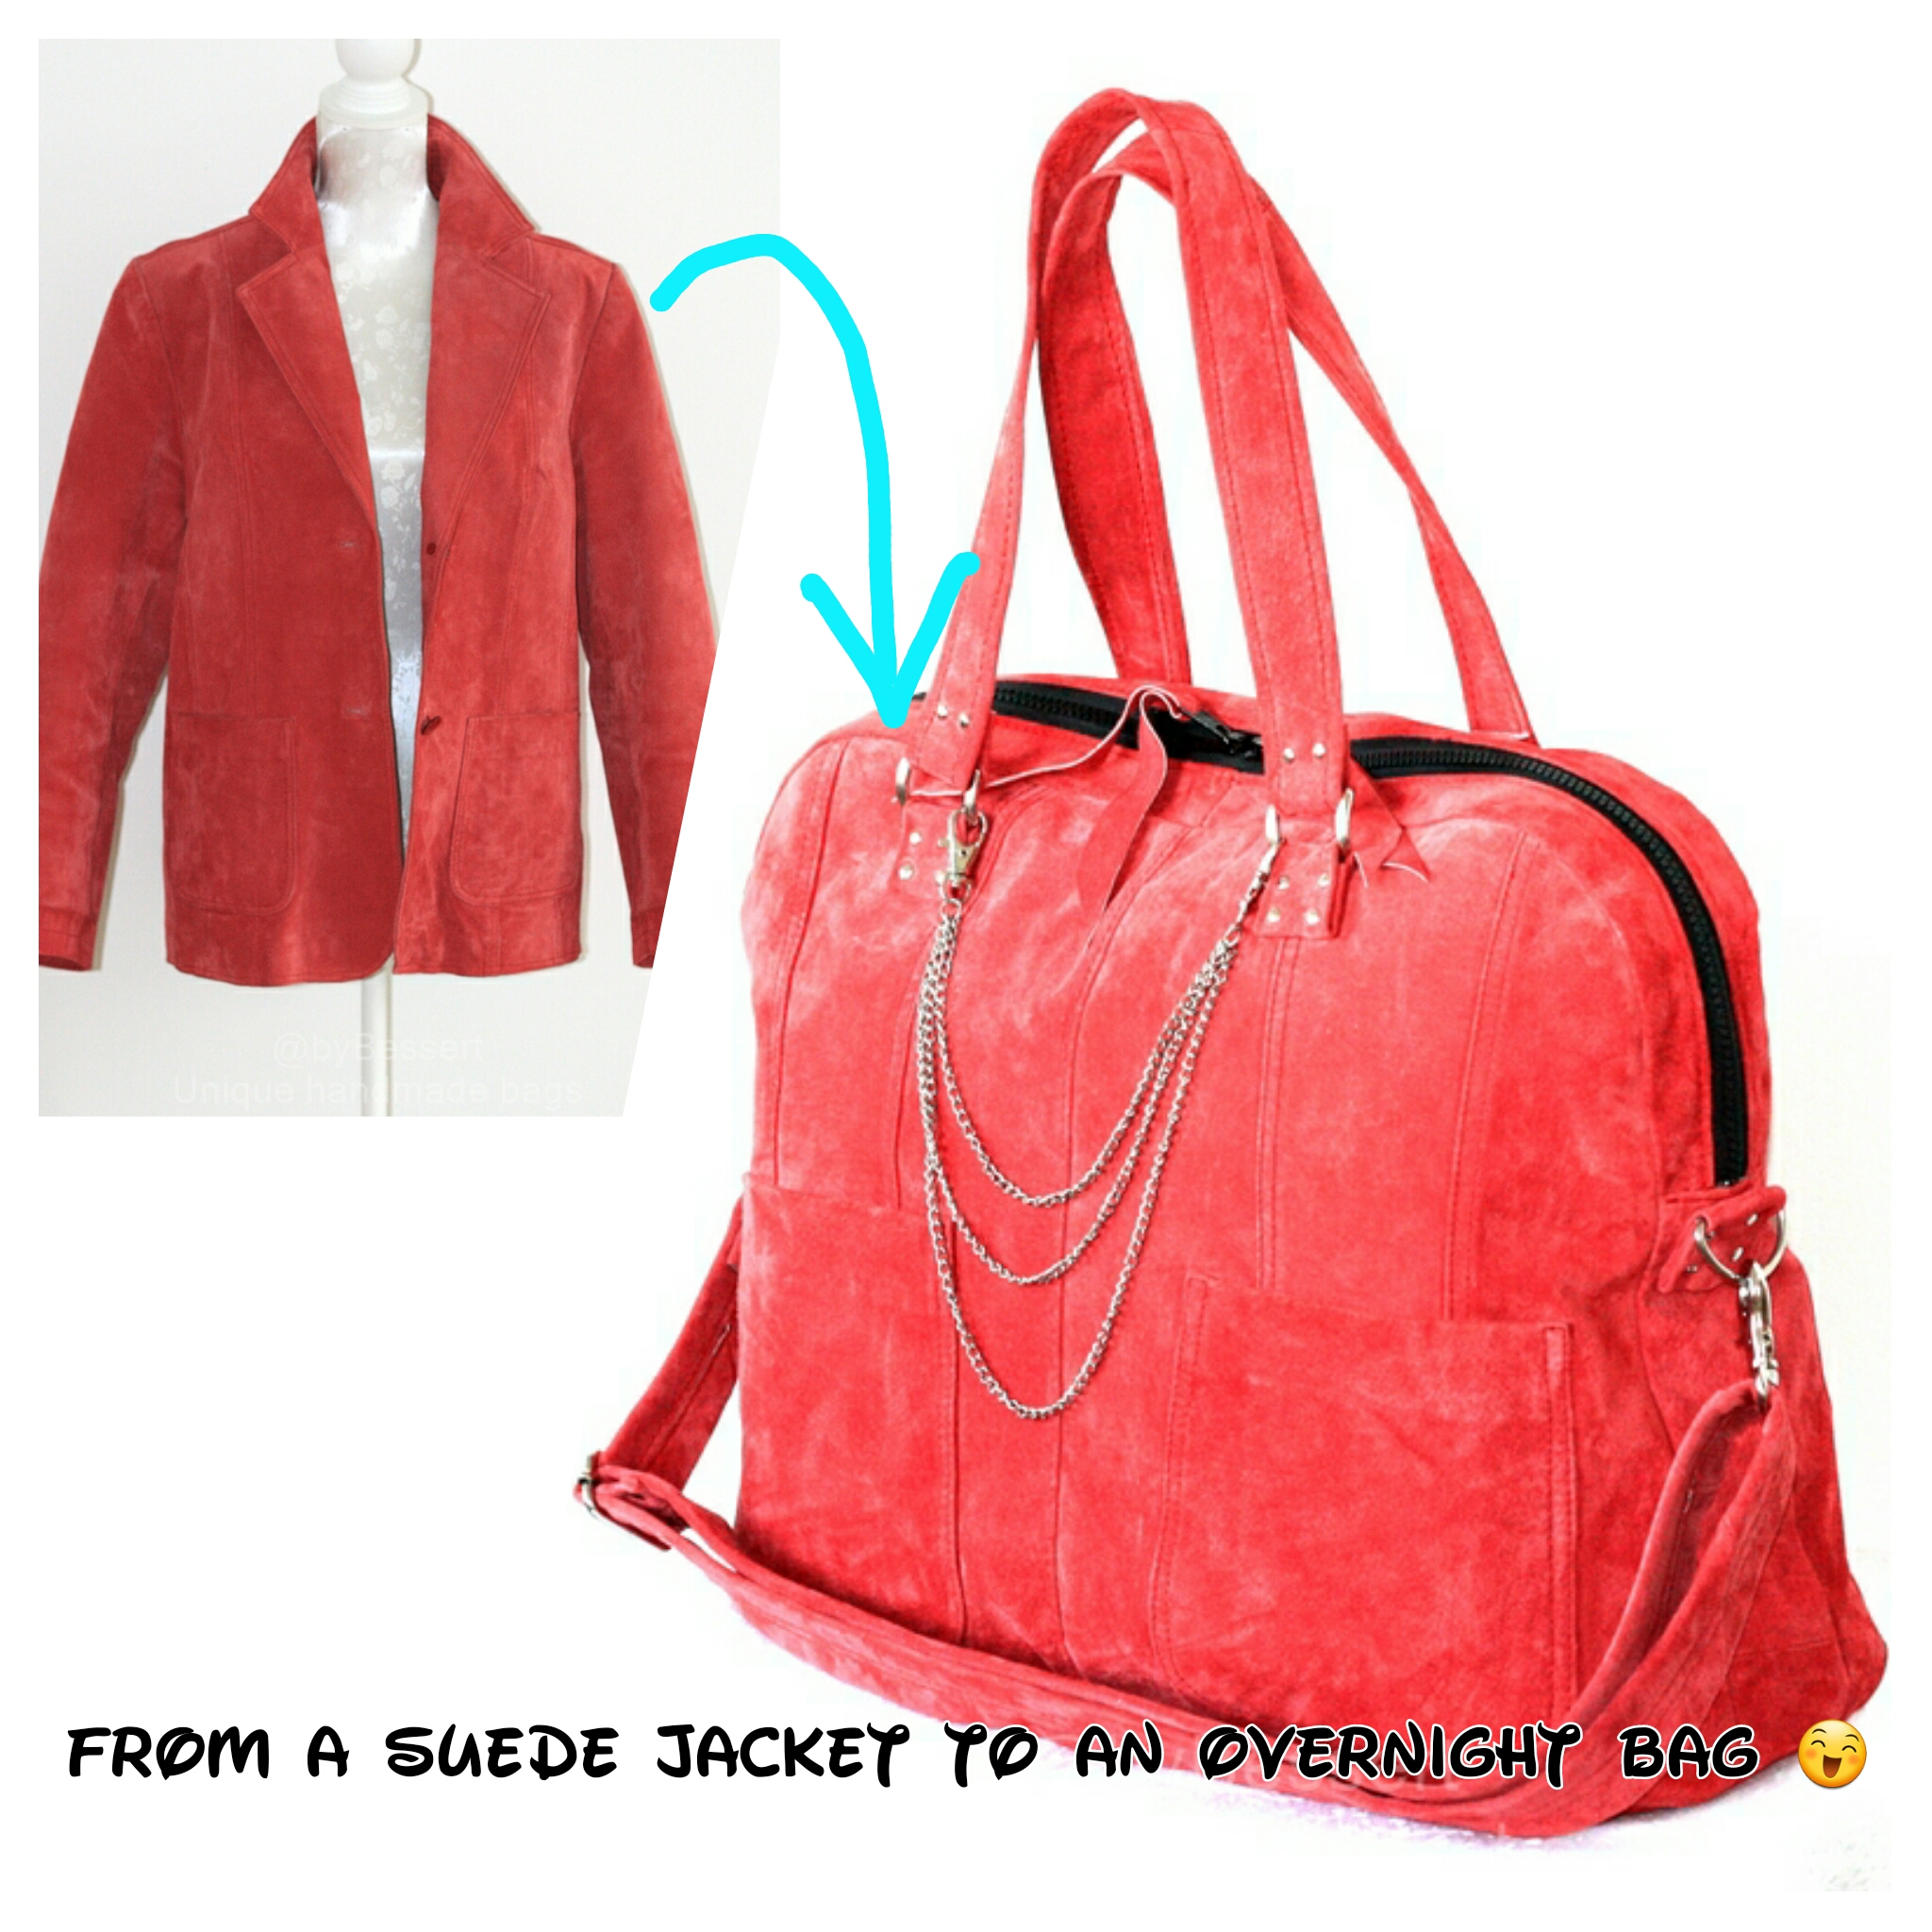 From jacket to overnight bag